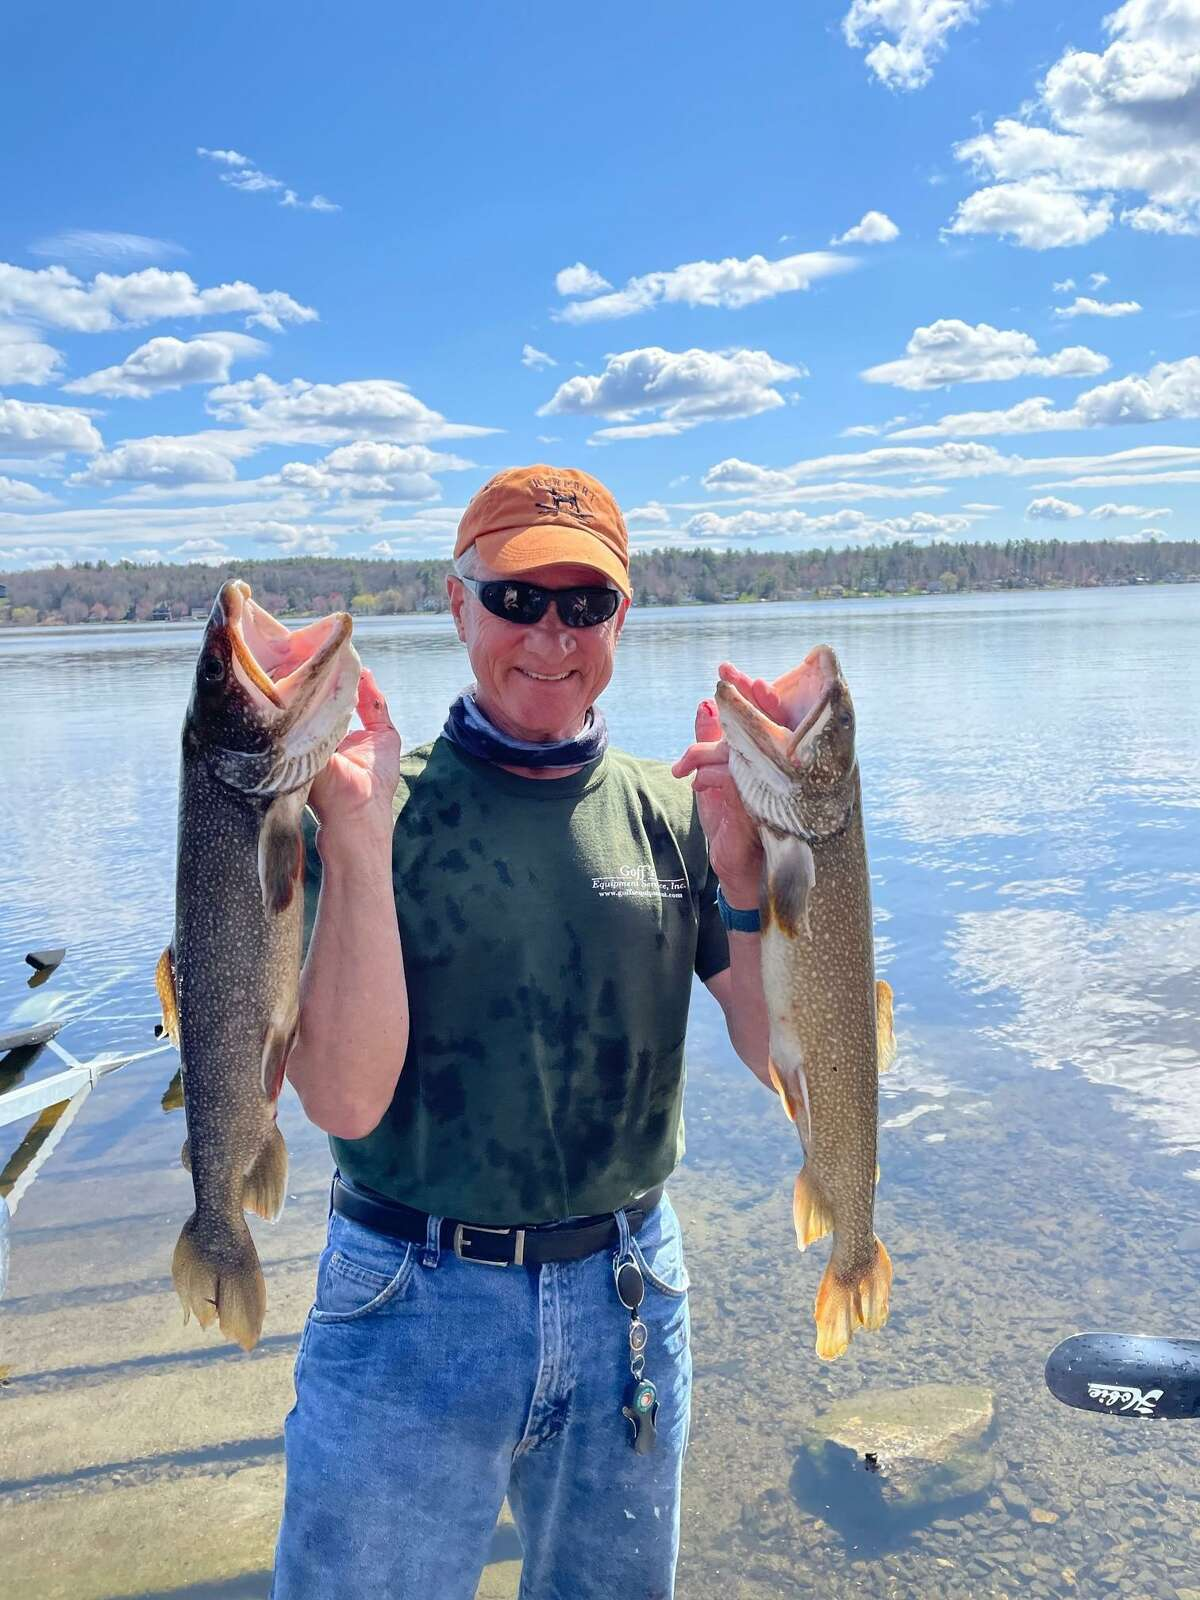 Steve Putnam caught two sizeable trout recently, while on Tyler Pond in Goshen in his paddle kayak. The fish, each about 26 inches and more than five pounds, put up quite a fight before Putnam got them into his kayak.